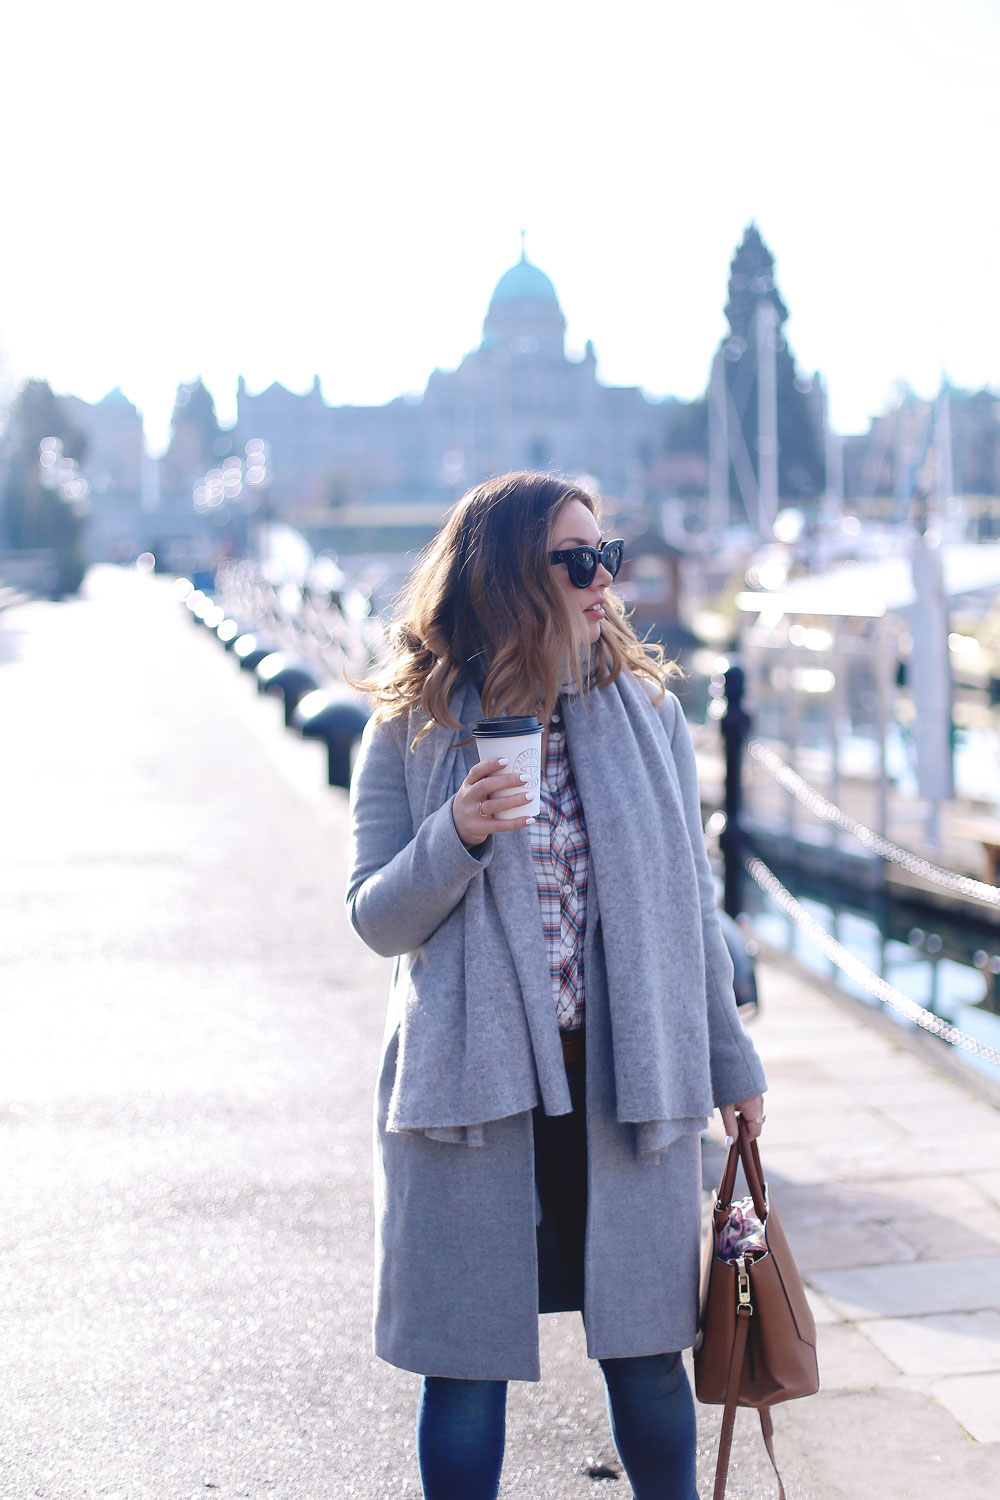 Plaid shirt styling tips in a grey wool coat, grey cashmere scarf, ripped skinny jeans, leather ankle boots and red plaid shirt